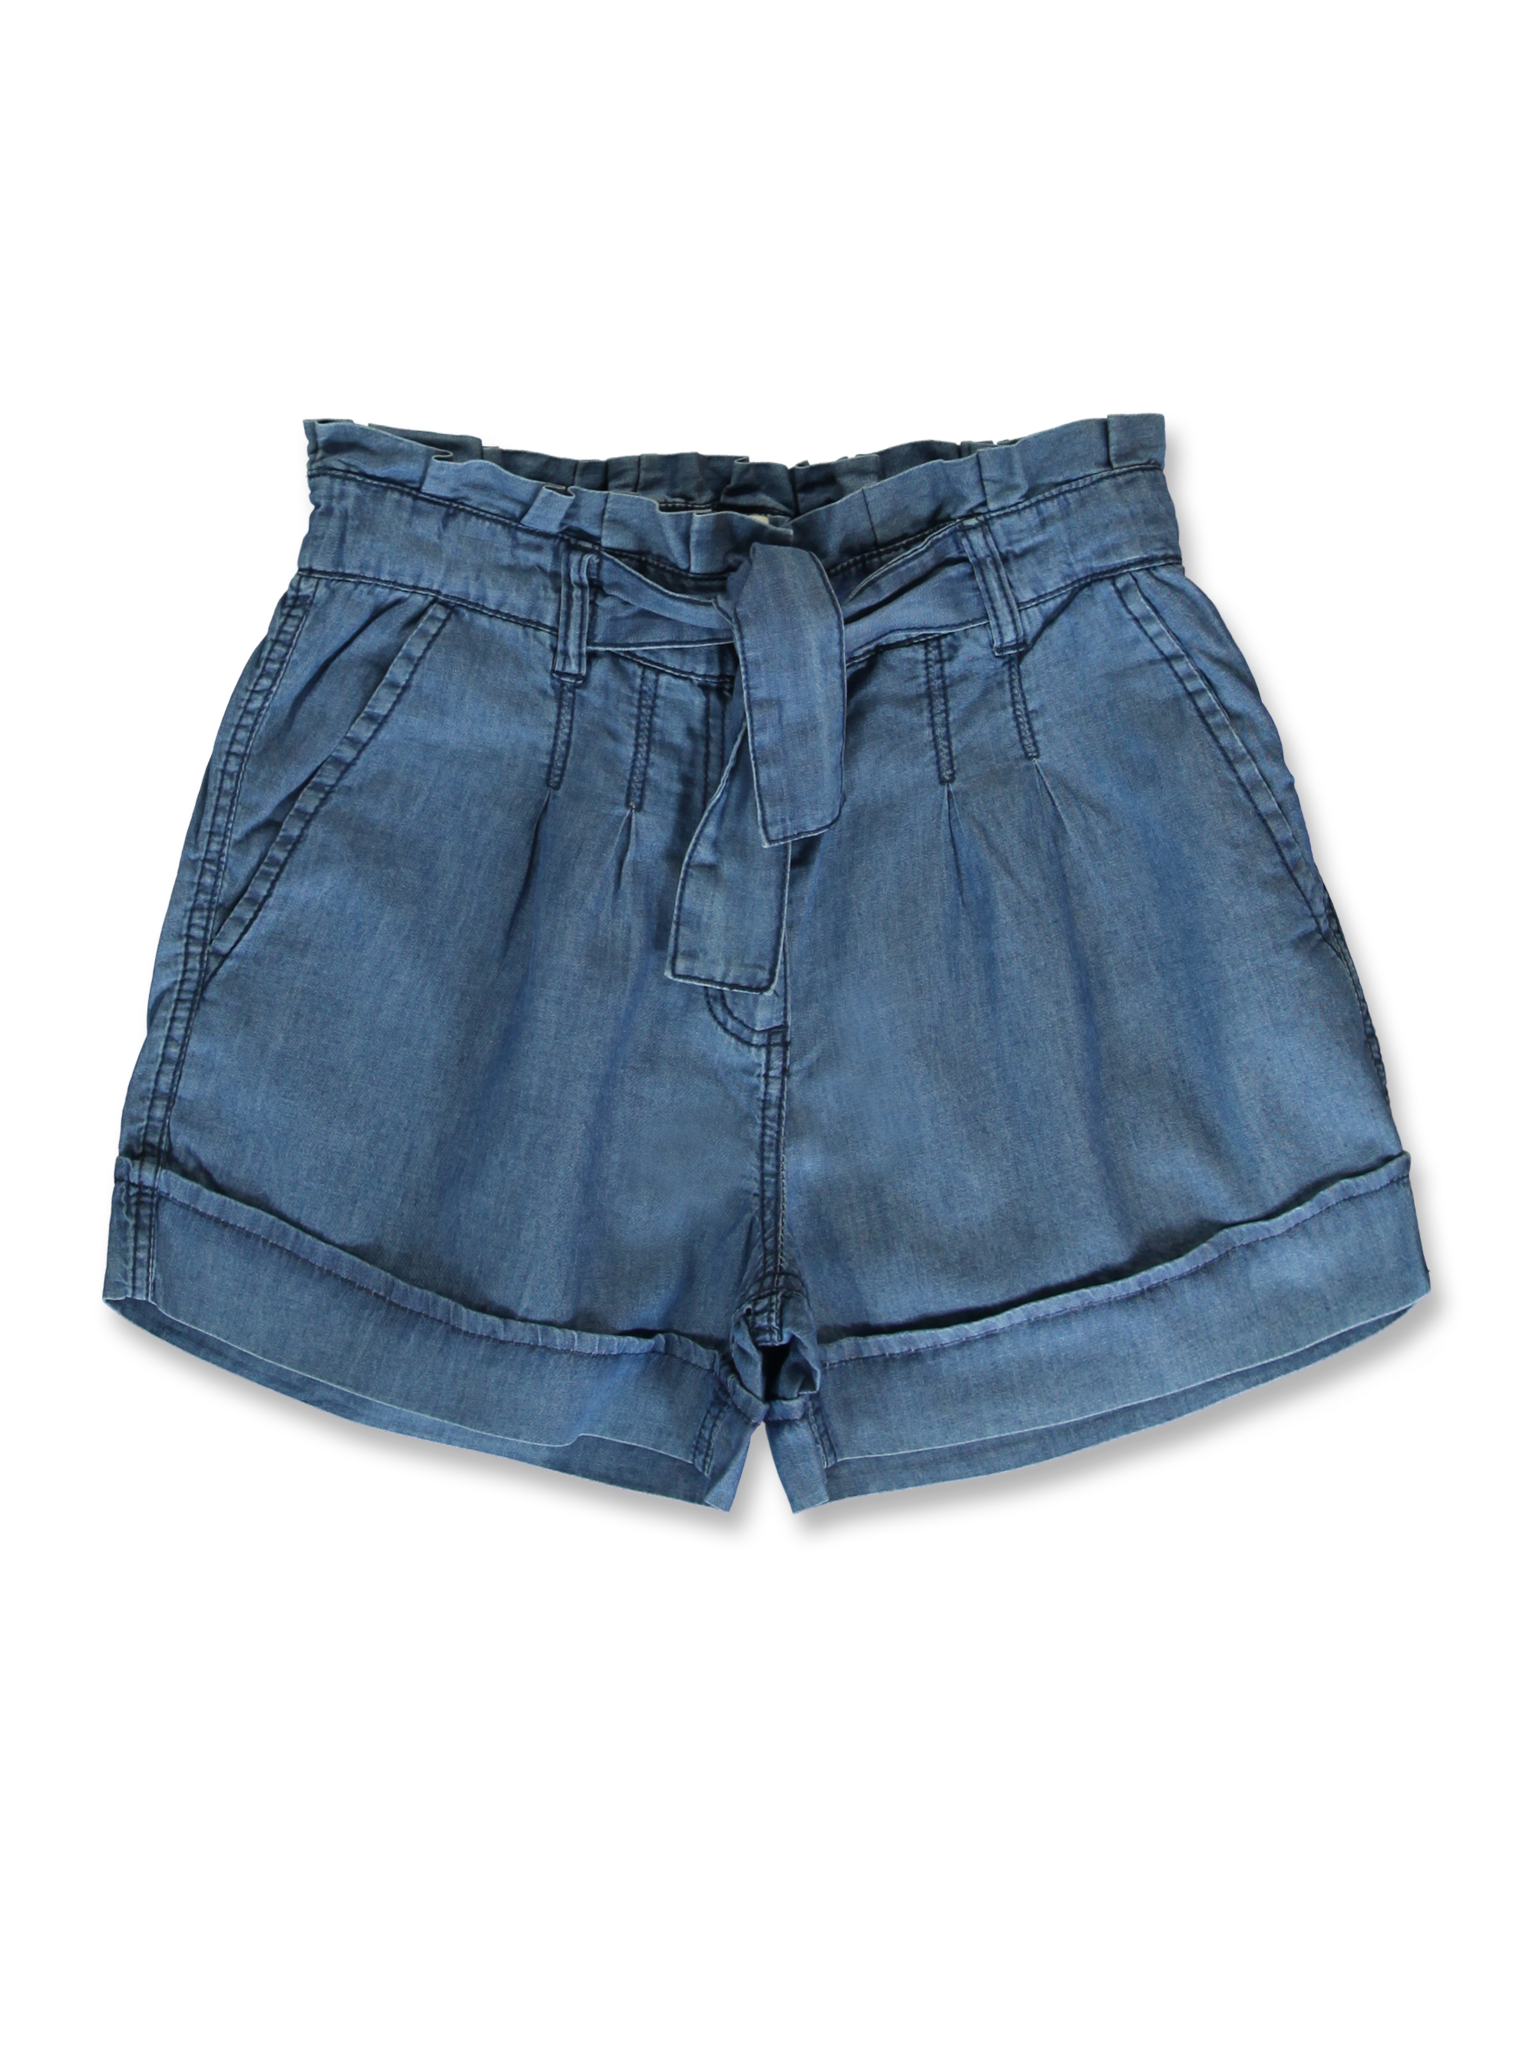 All Brands | Summerproducts Ladies | Shorts | 12 pcs/box